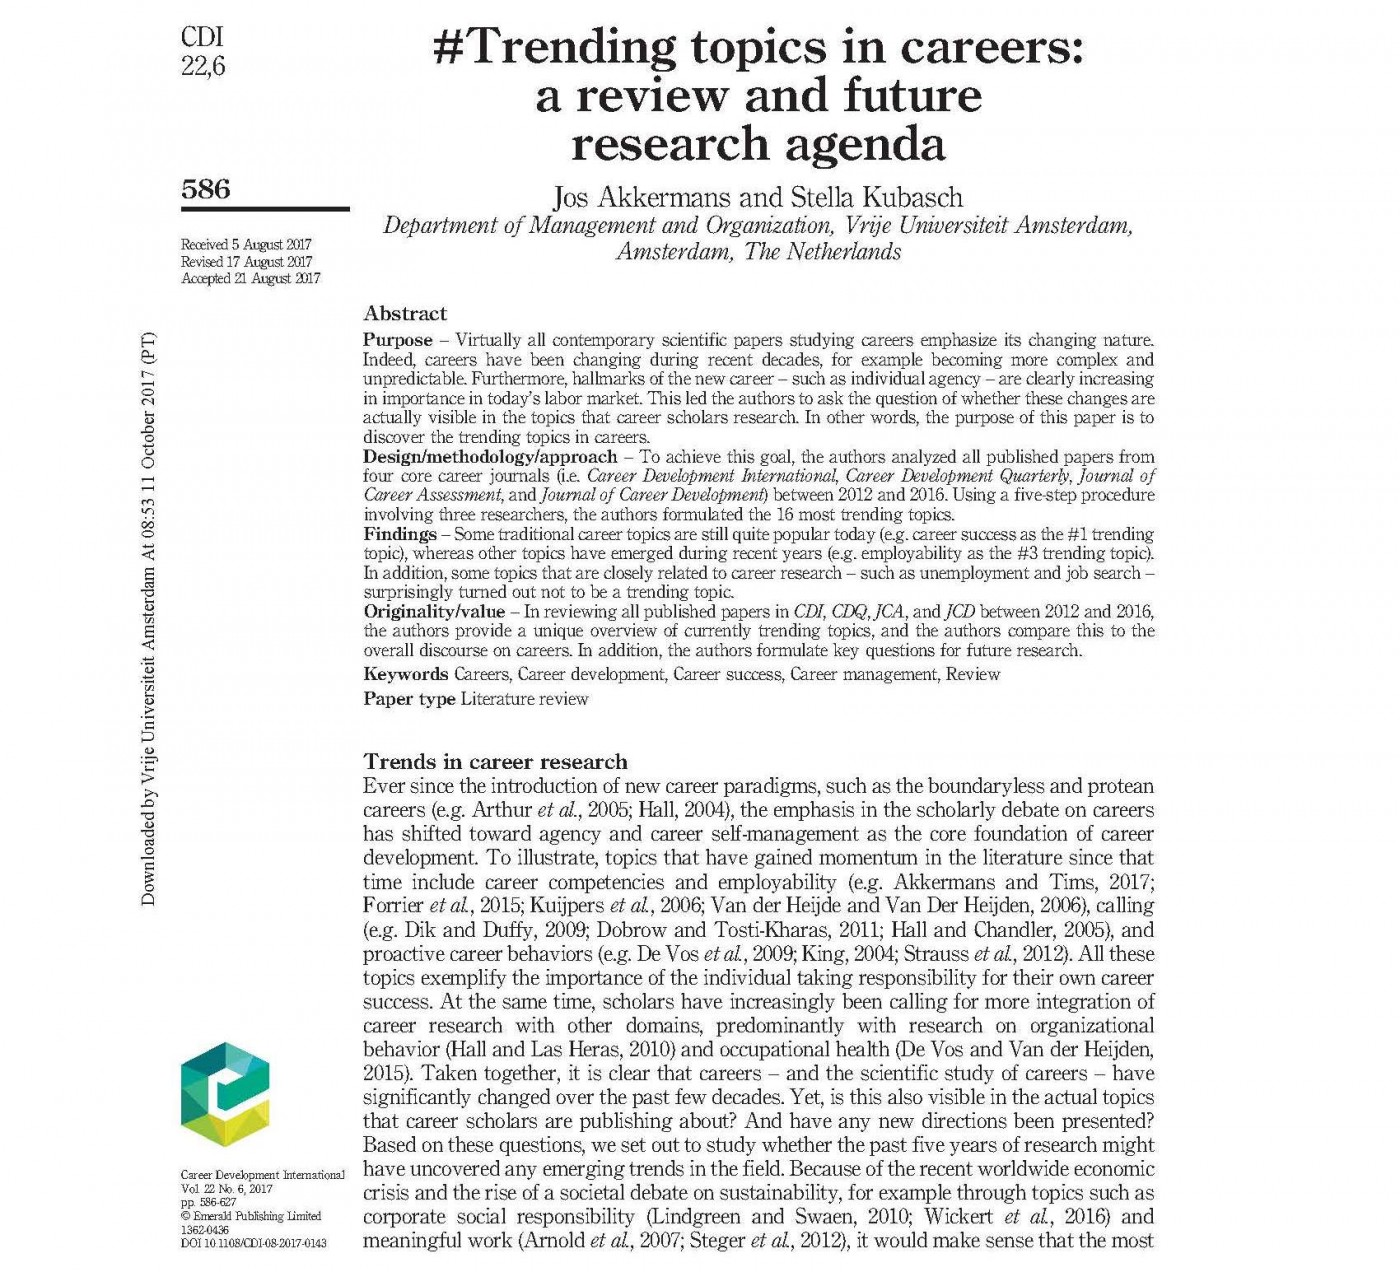 022 59e096d33a29650001209782 1620 20akkermans202620kubasch20201720 20trending20topics20in20careers Research Paper Topics For Impressive Papers American History Sports 2019 1400